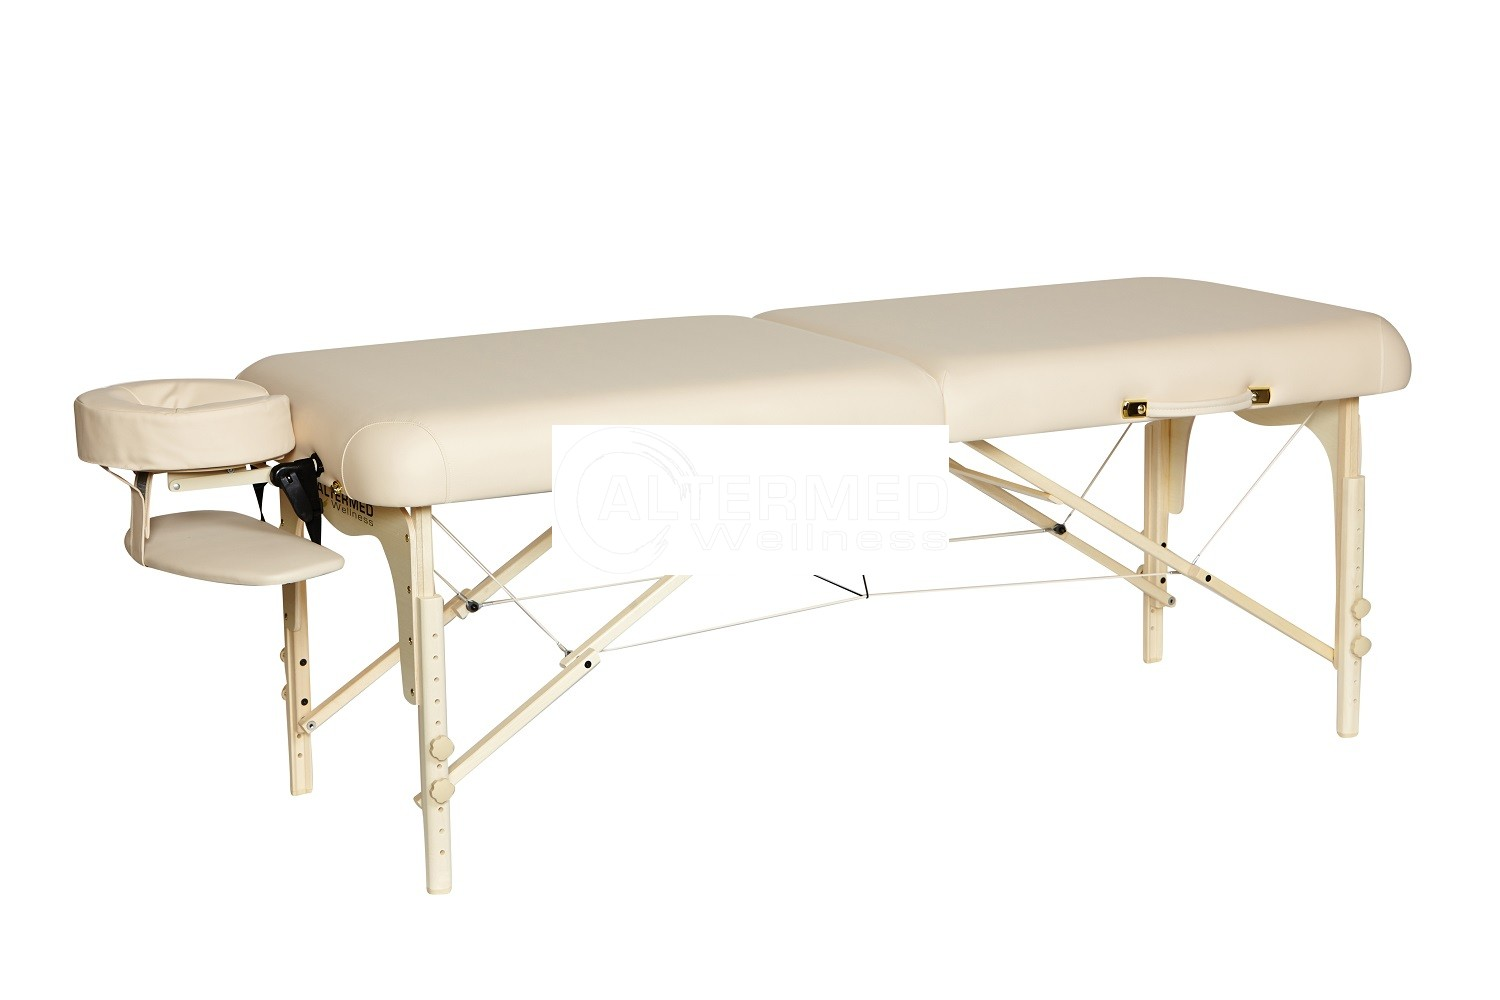 ayurveda ayurvedic massage products multipurpose bed furniture table sale for spa